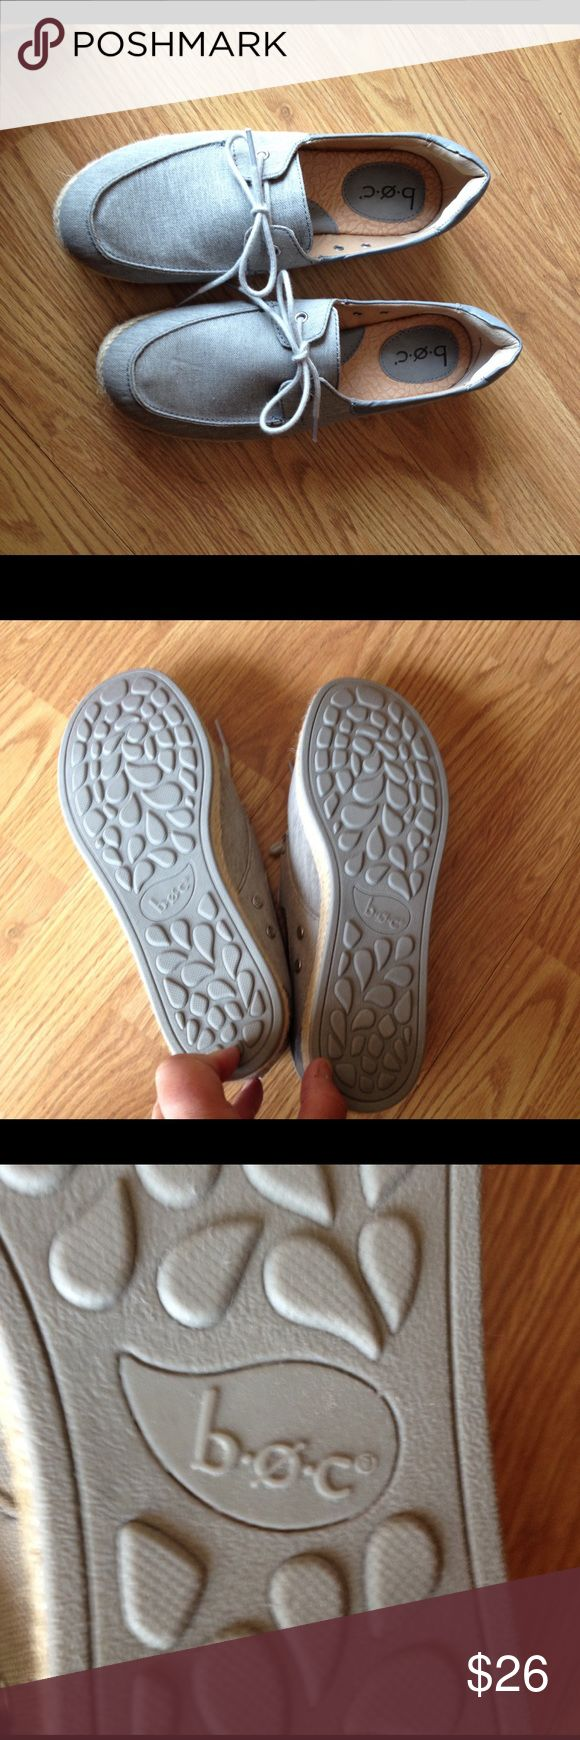 NWOT B O C ladies canvas deck boat shoes sz 9 New without tags ladies shoes canvas boat or deck style - similar to Sperry's. Beautiful light gray color B O C Shoes Flats & Loafers